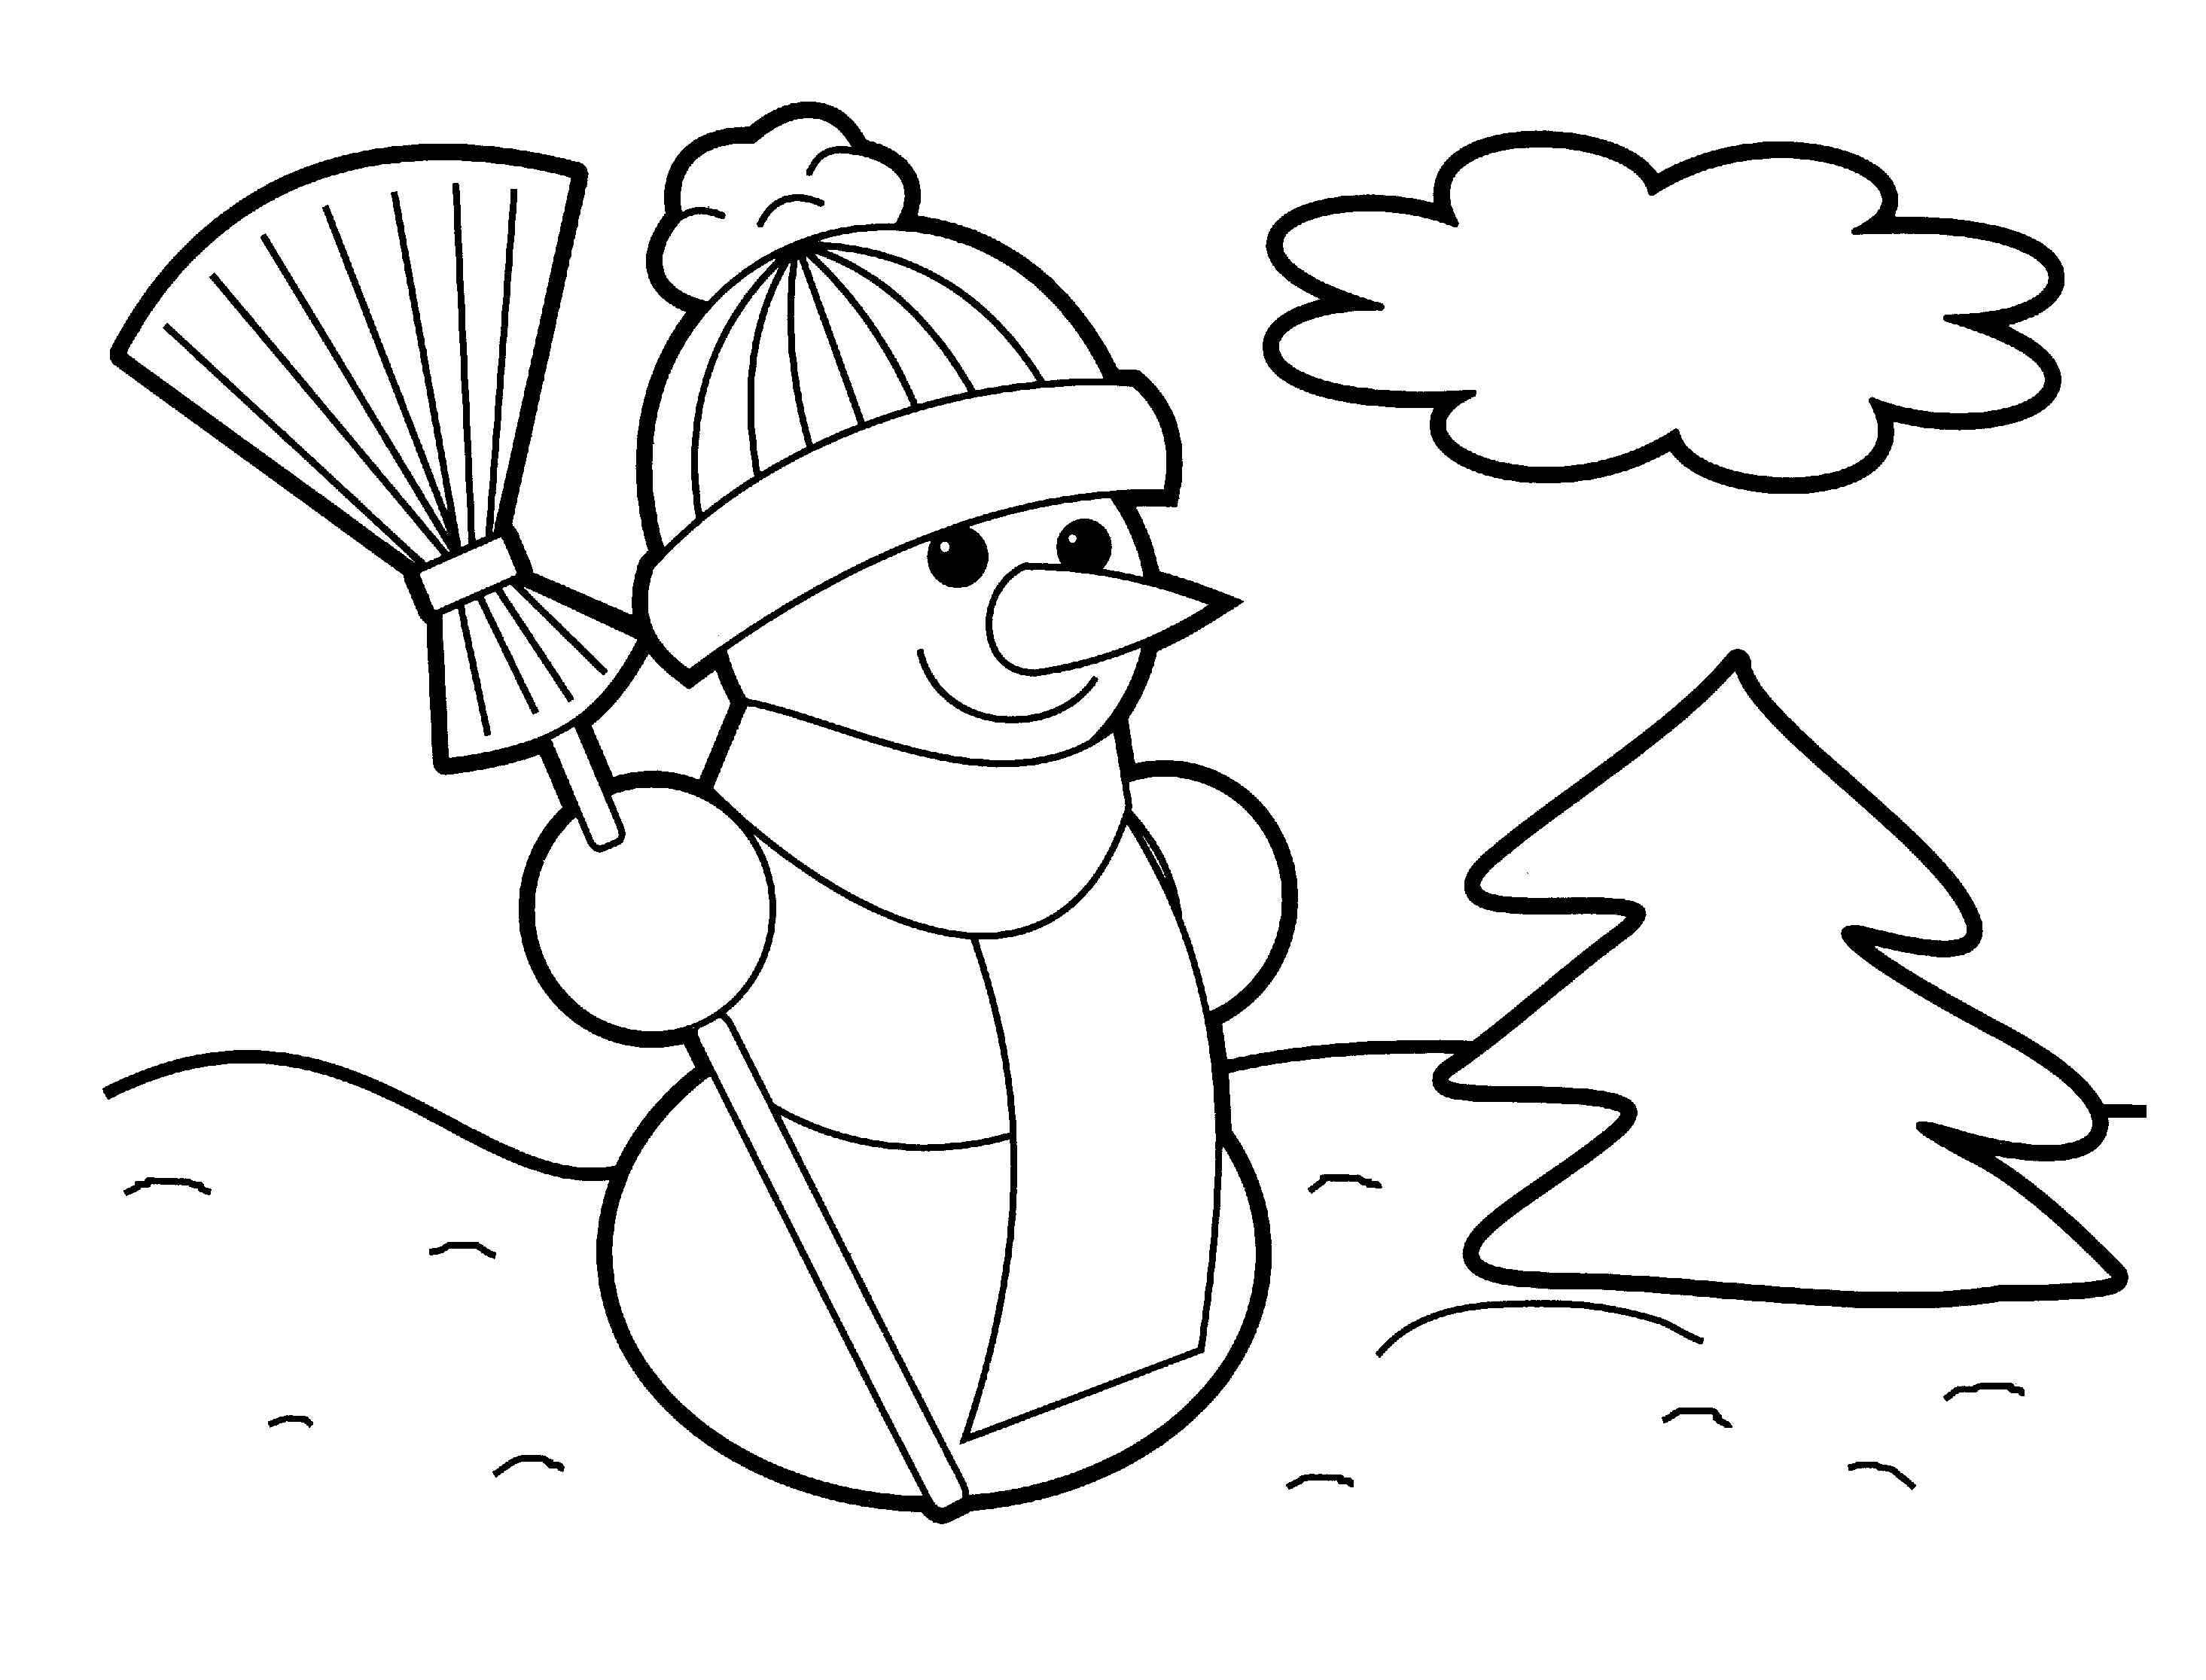 children christmas coloring pages - photo#6